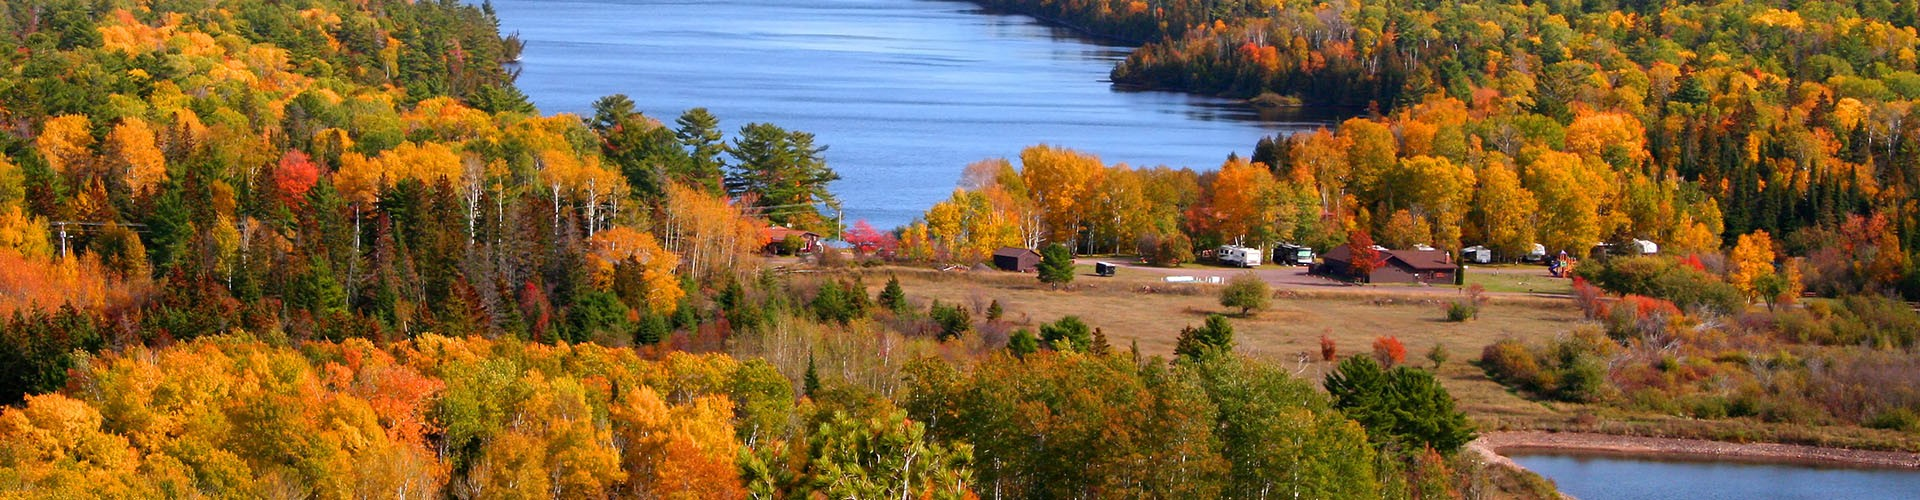 autumn view of copper harbor